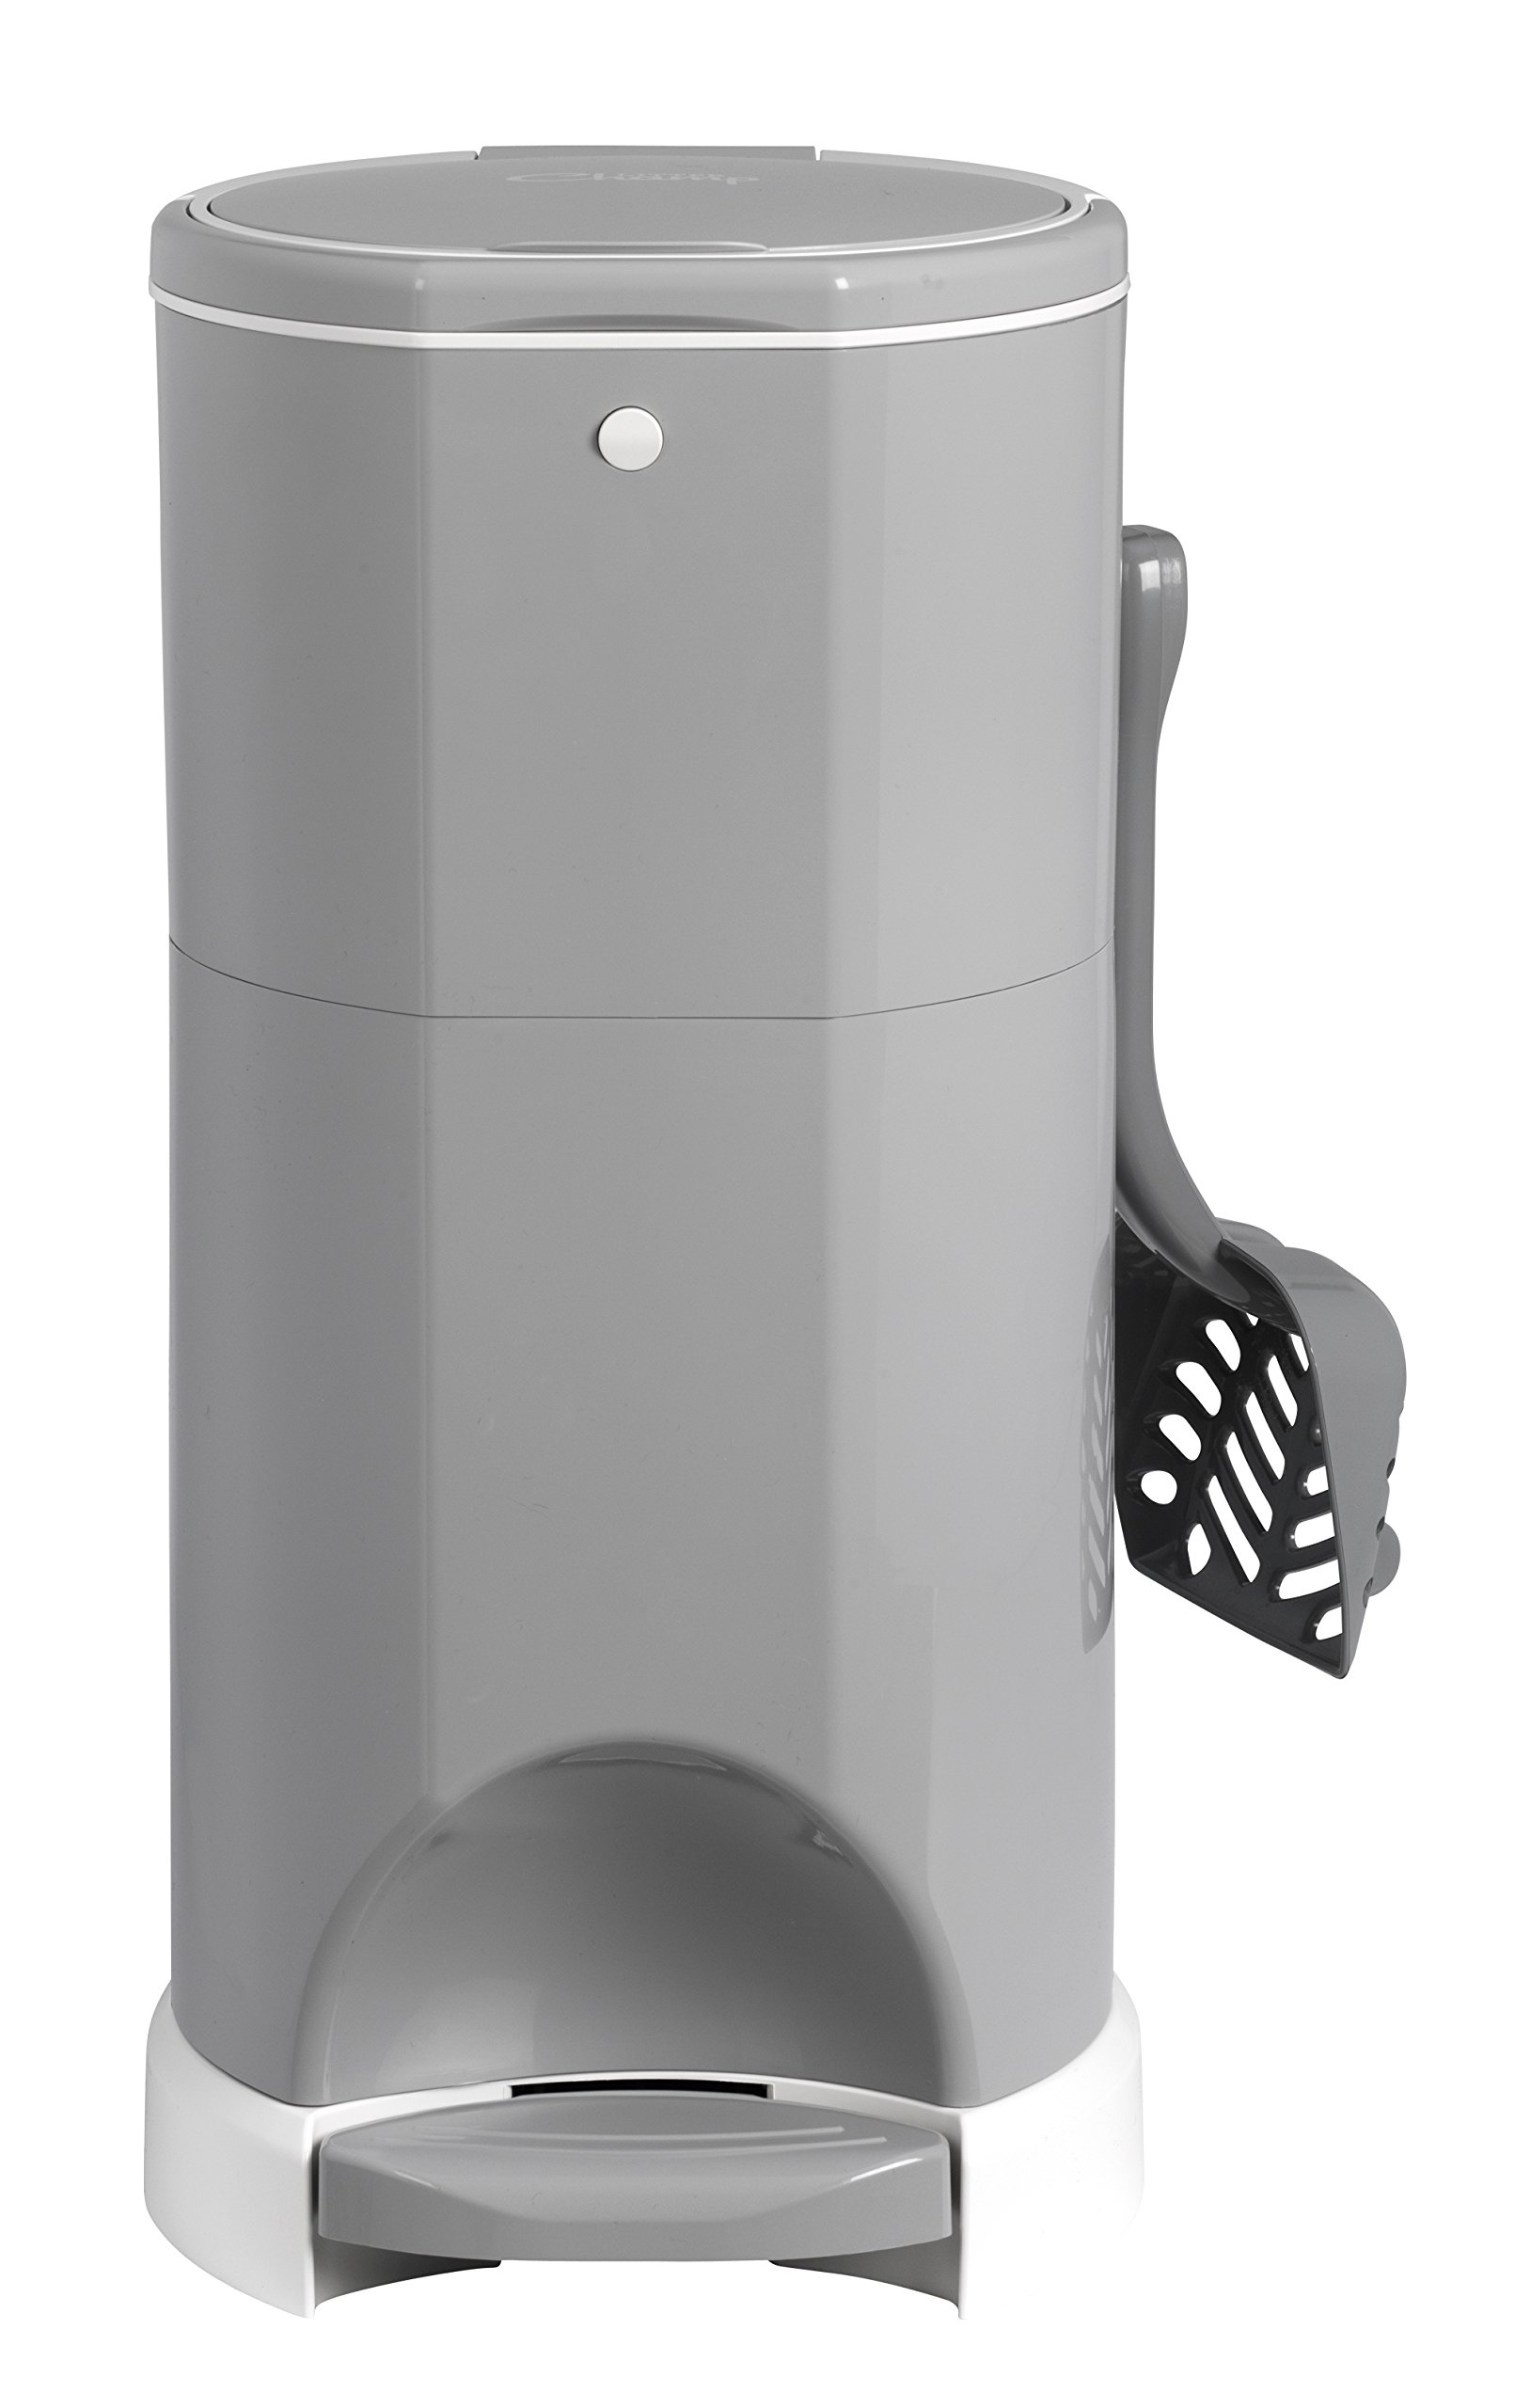 Litter Champ Premium Odor-Free Cat Litter Disposal System, Grey by Lucky Champ